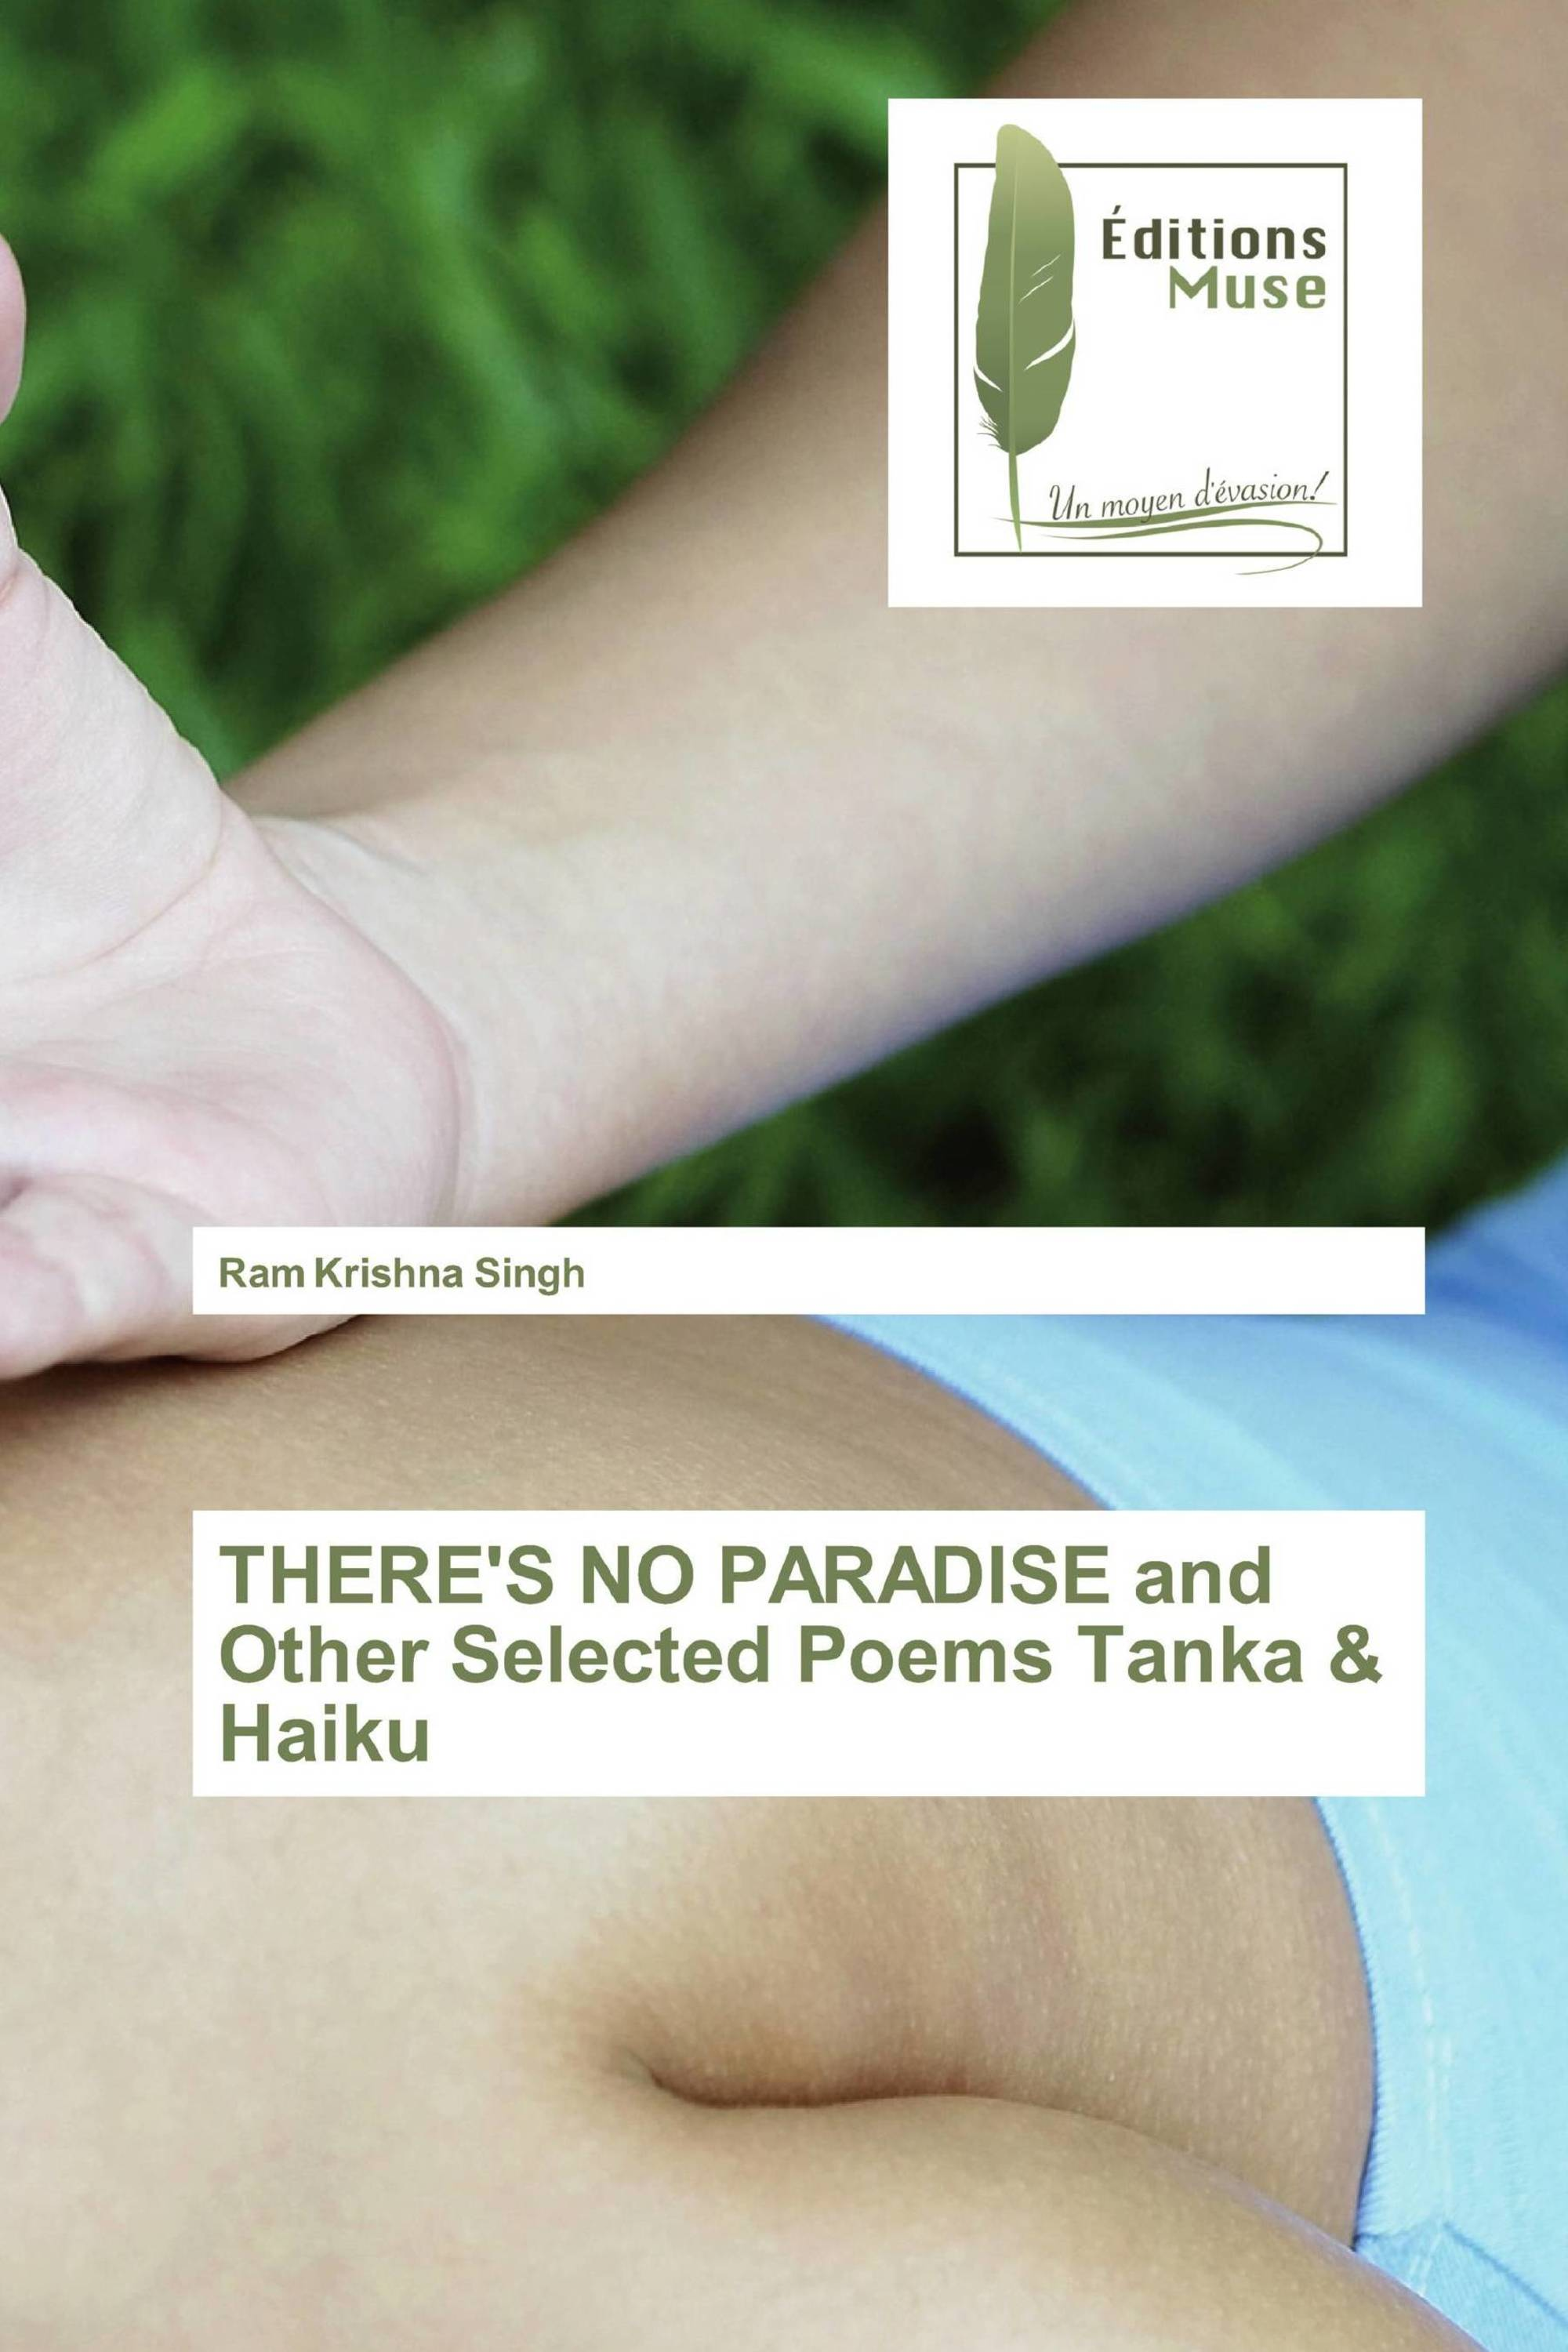 THERE'S NO PARADISE and Other Selected Poems Tanka & Haiku